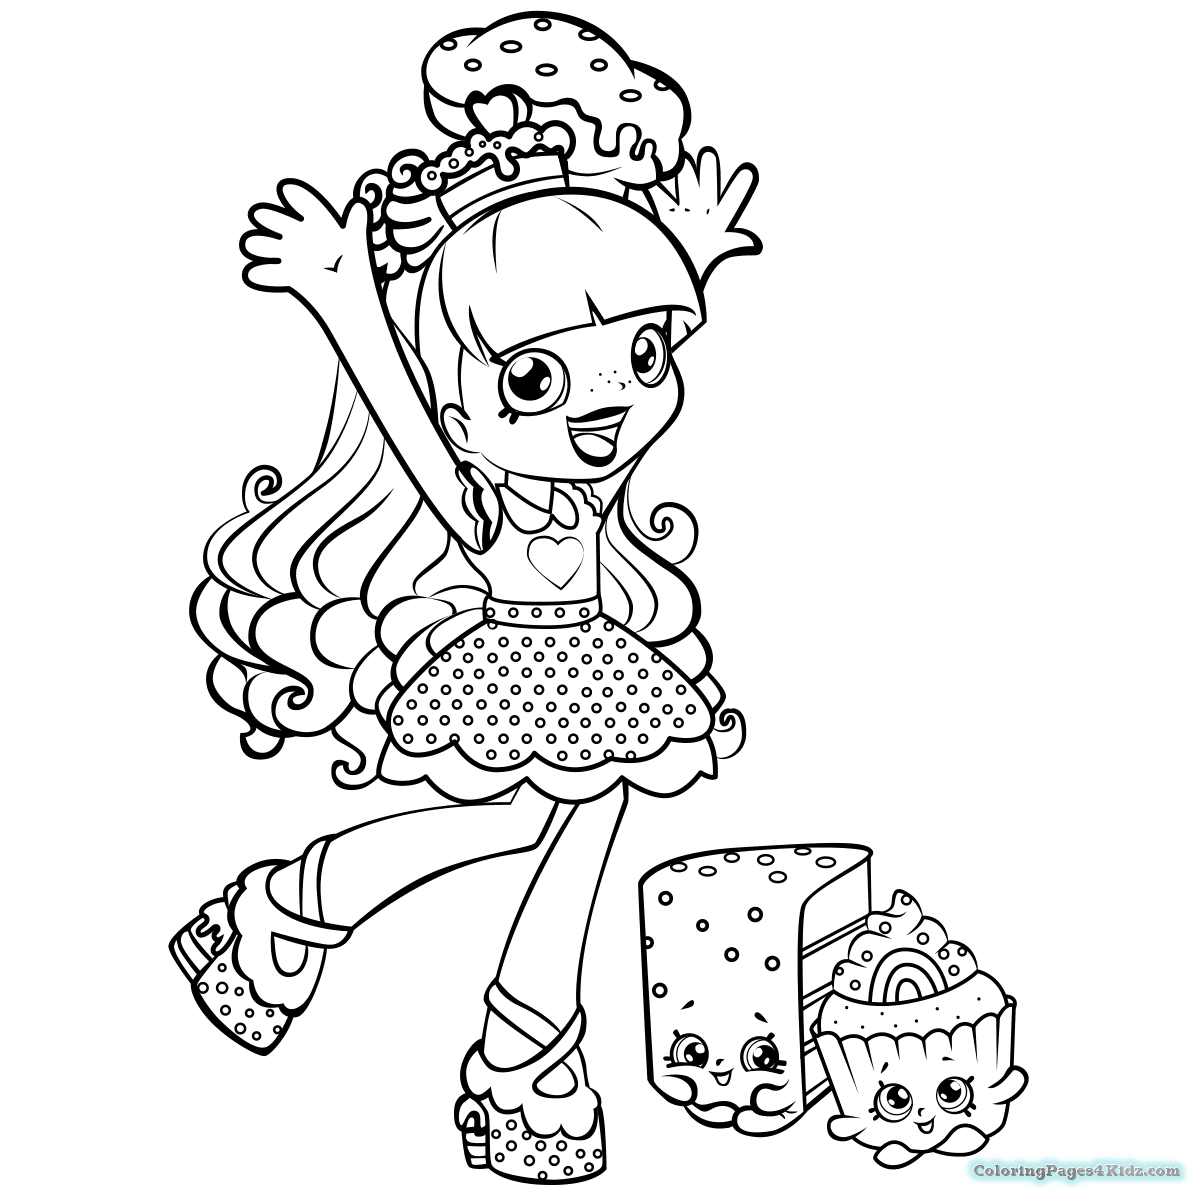 1200x1200 Shopkins Shoppies Coloring Pages Gallery Coloring For Kids